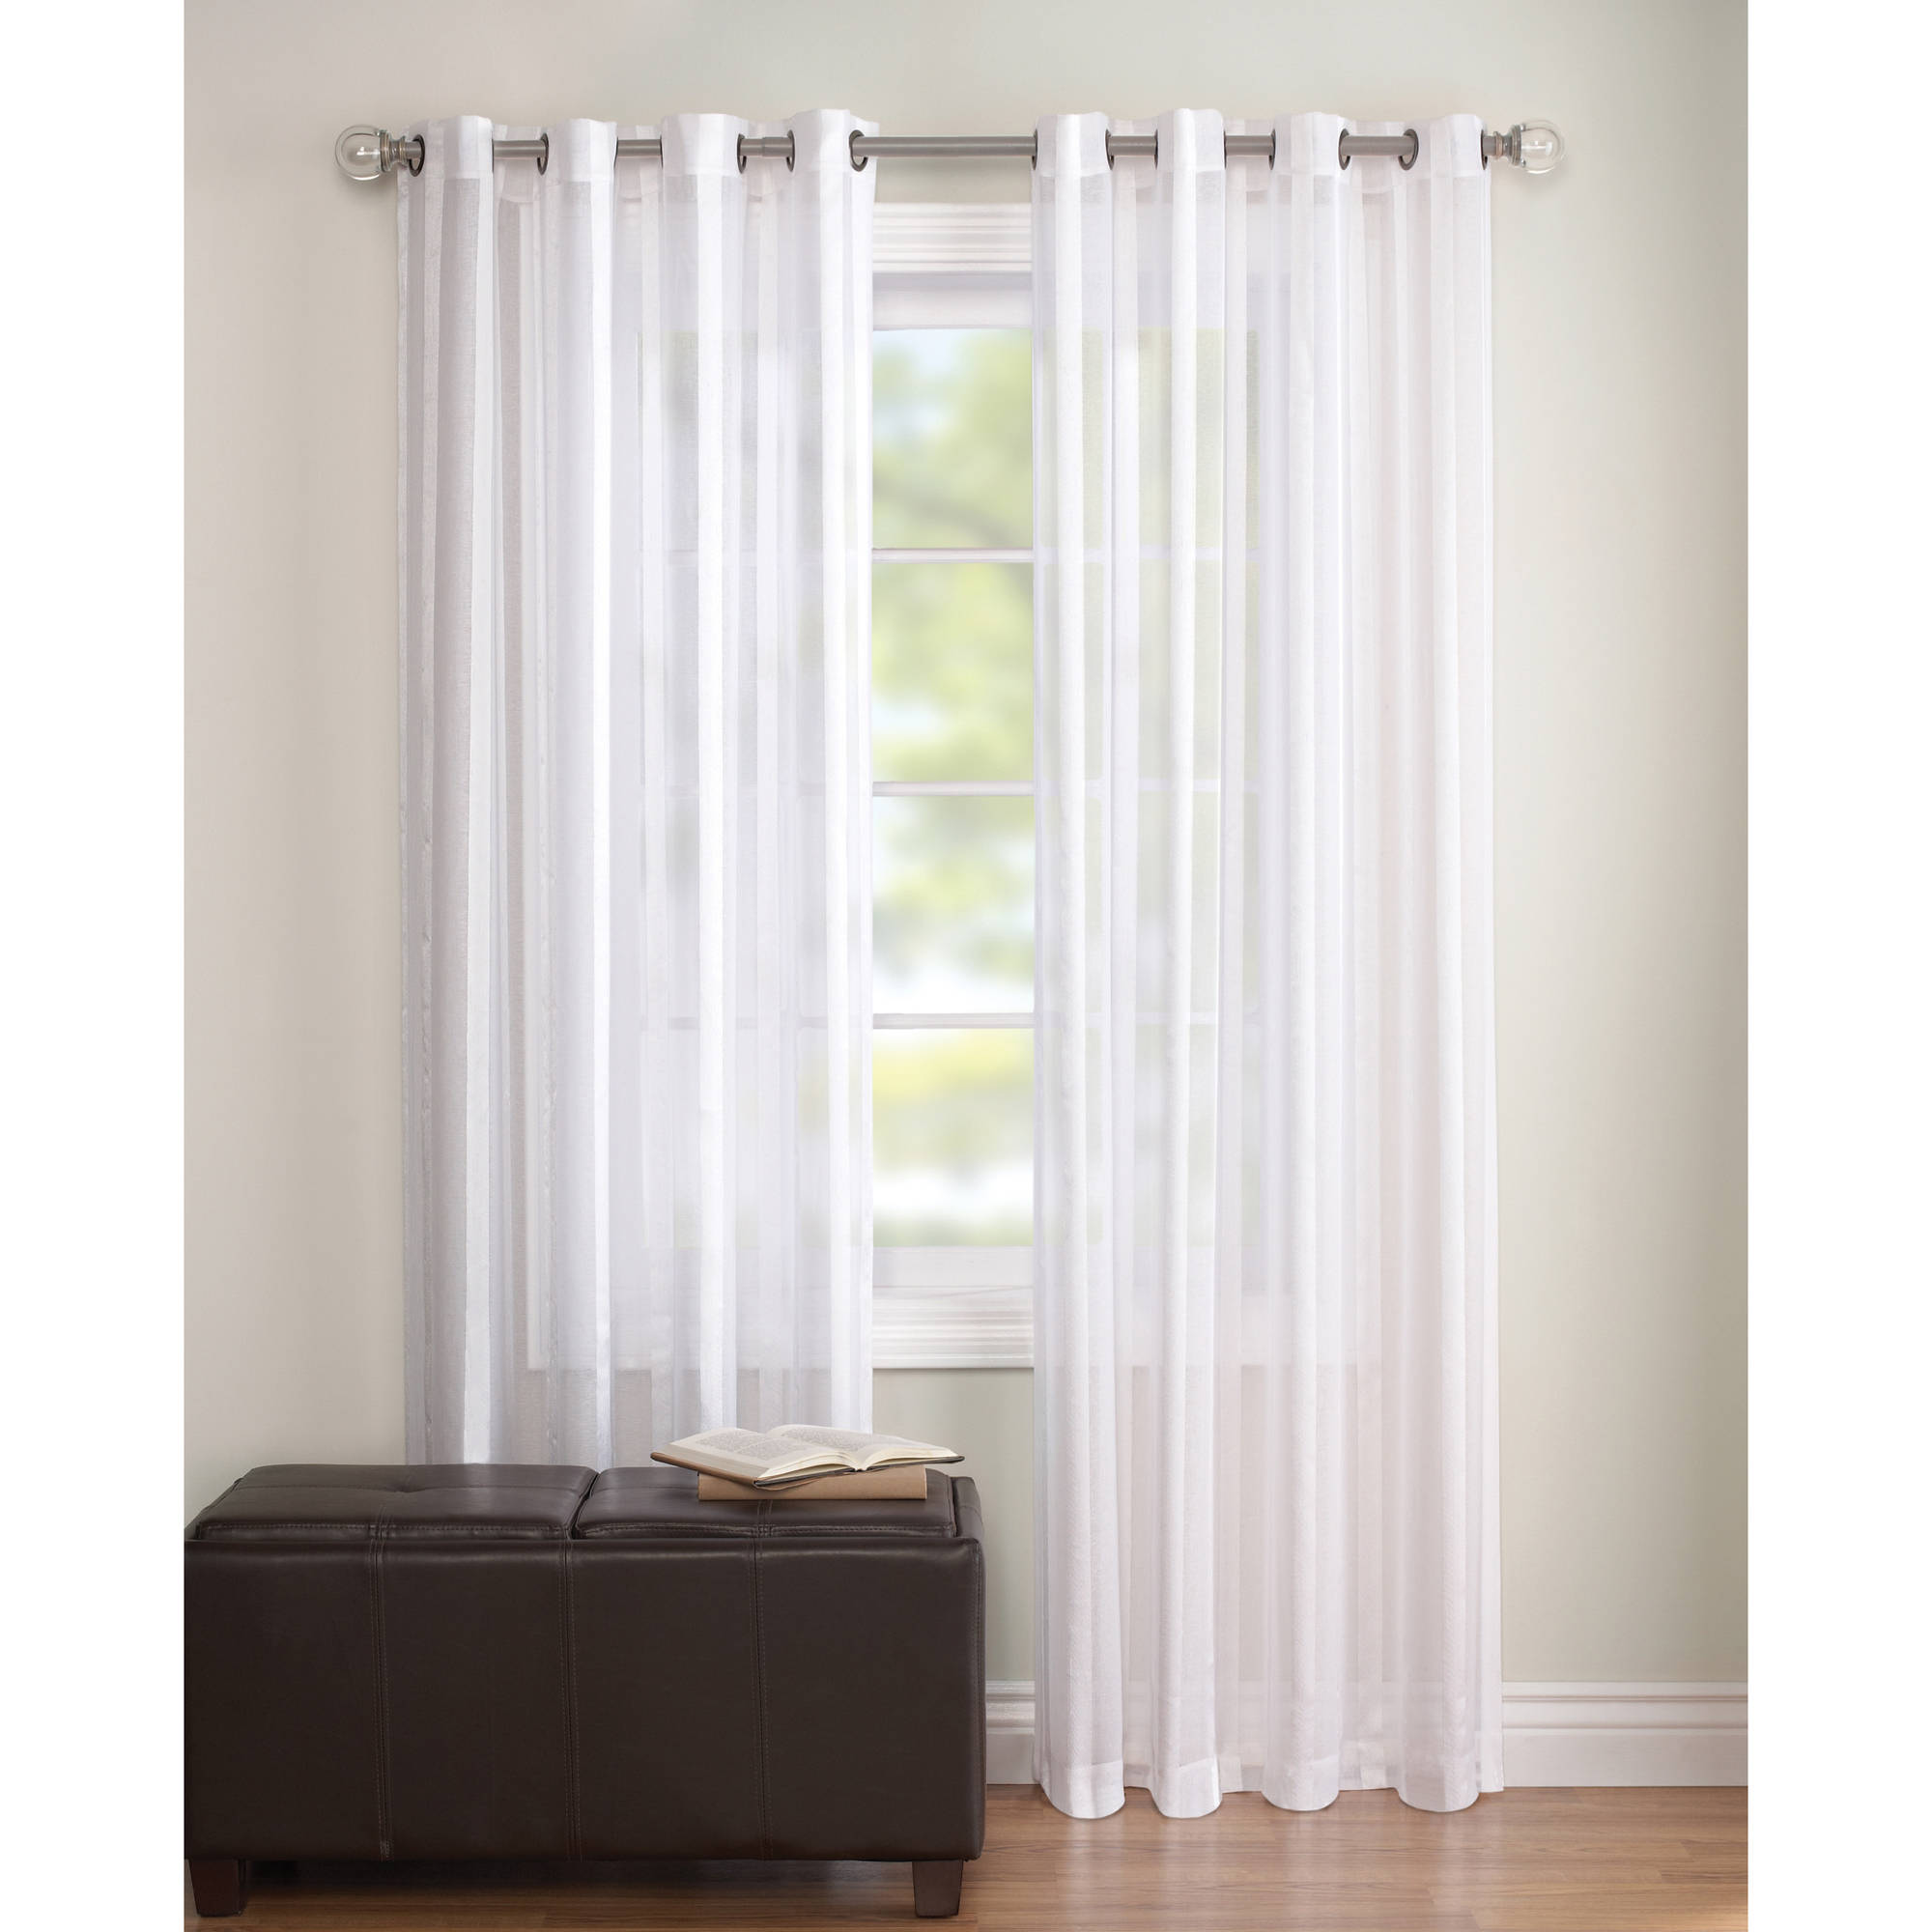 Better homes and gardens solid basket weave grommet window Better homes and gardens valances for small windows